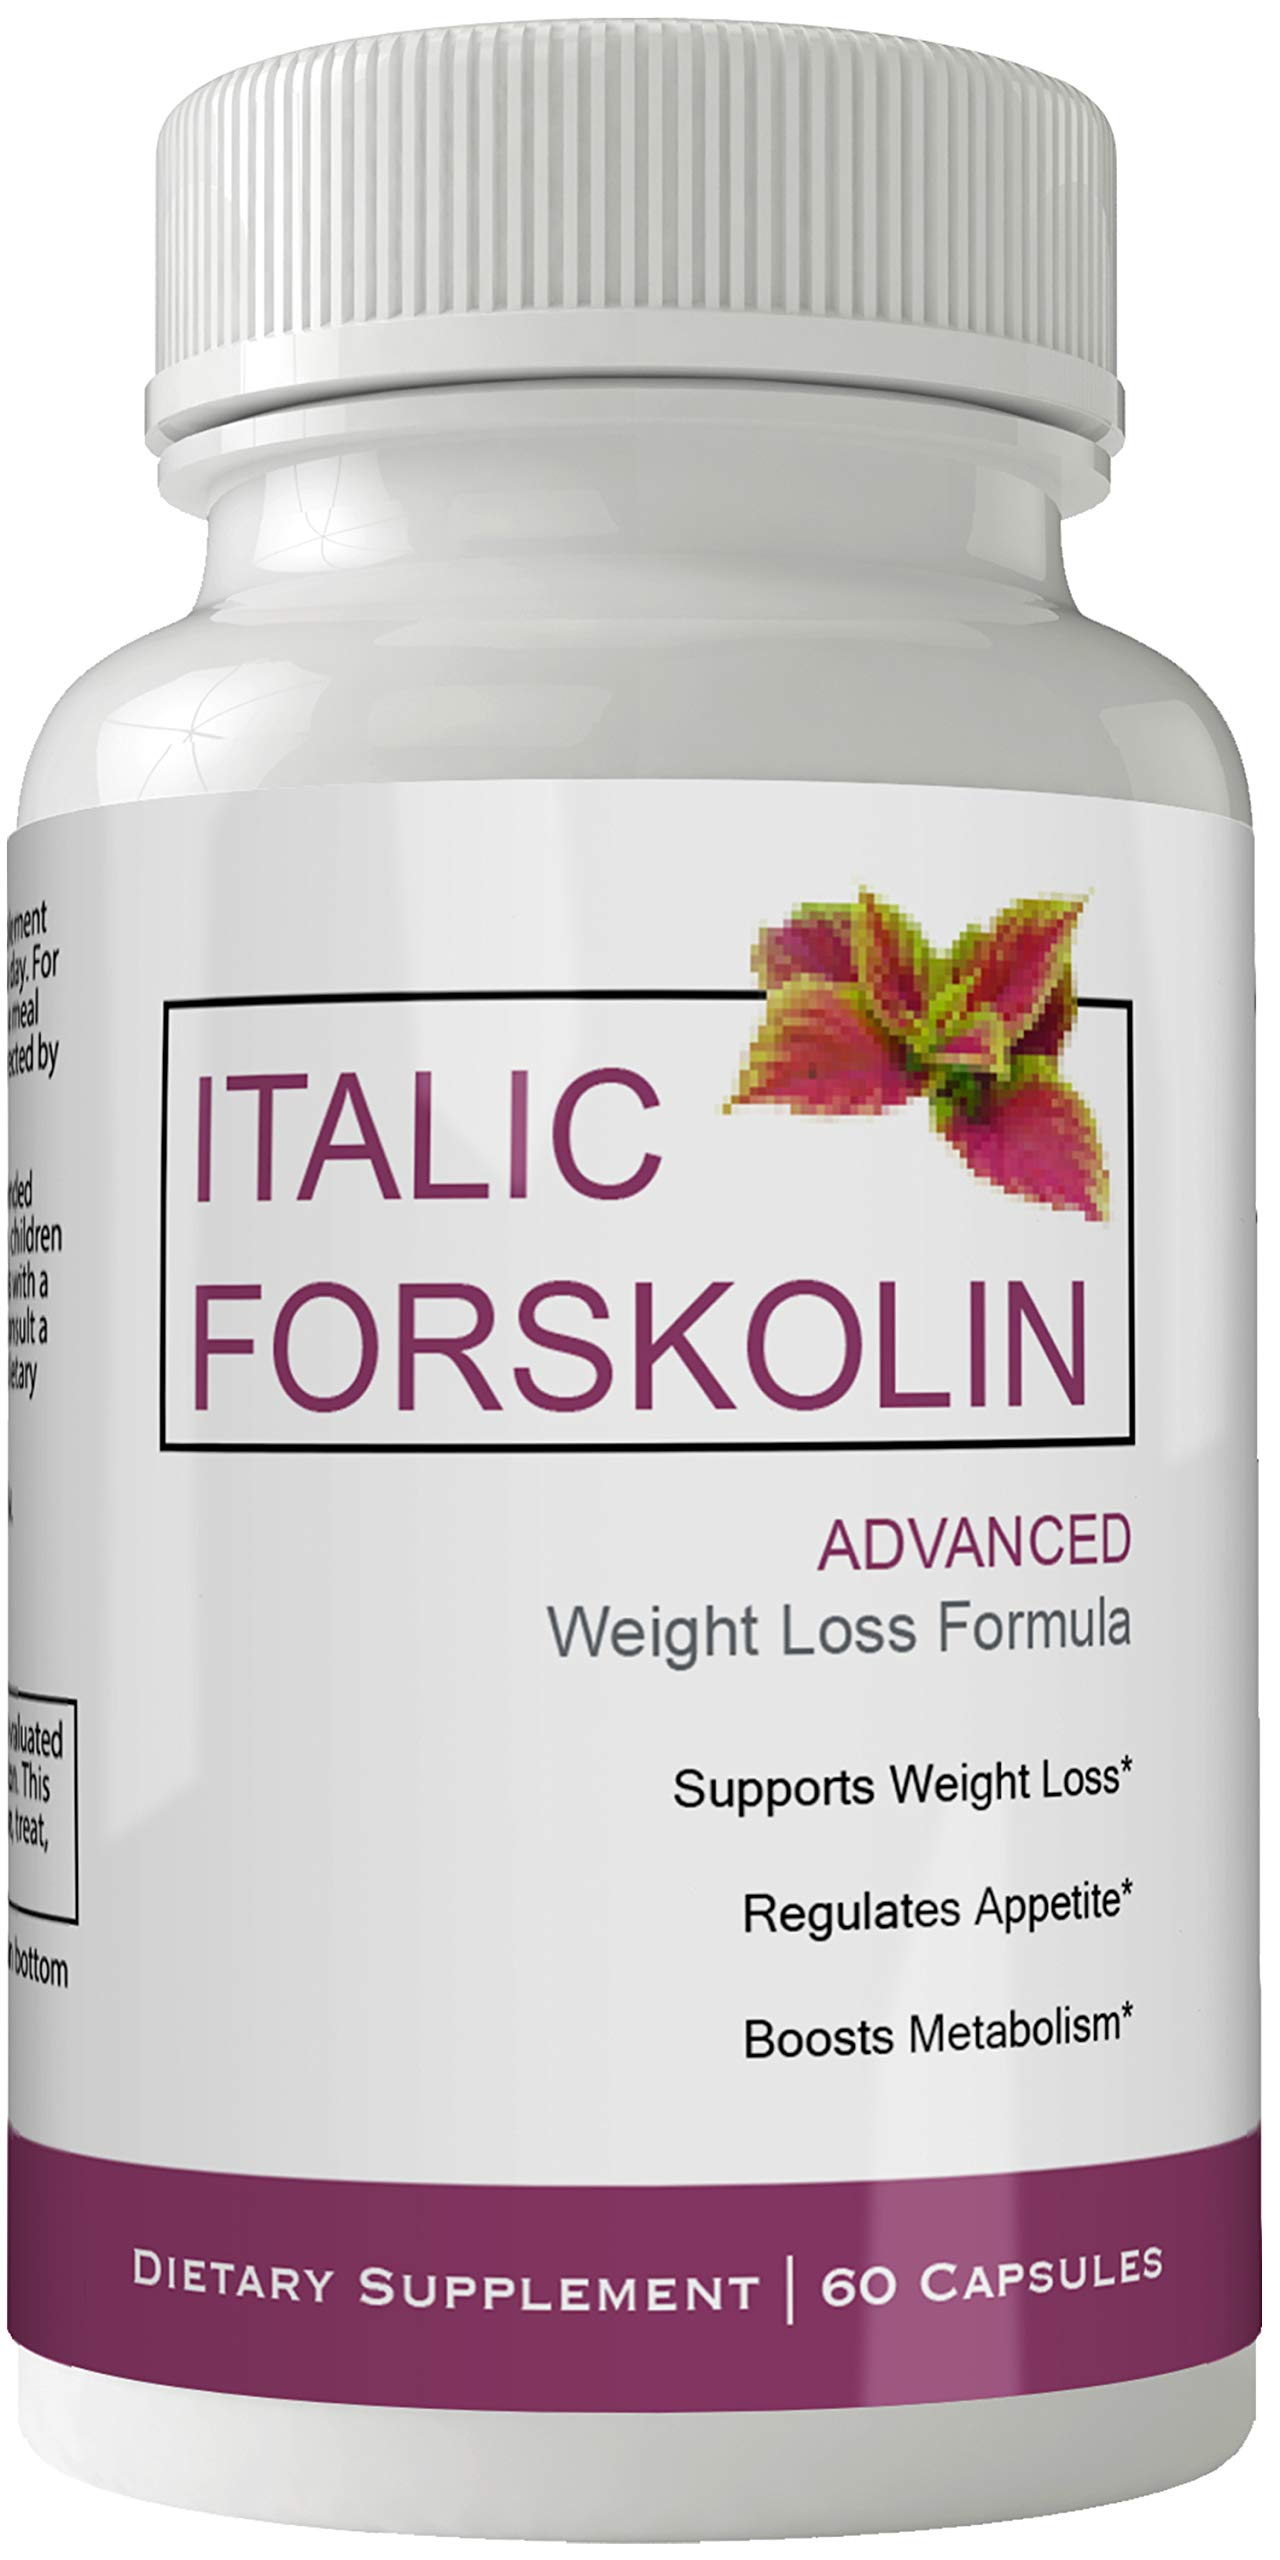 Italic Forskolin Supplement for Weight Loss Capsules with Natural High Quality Pure Forskolin Extract Diet Pills by nutra4health LLC (Image #1)